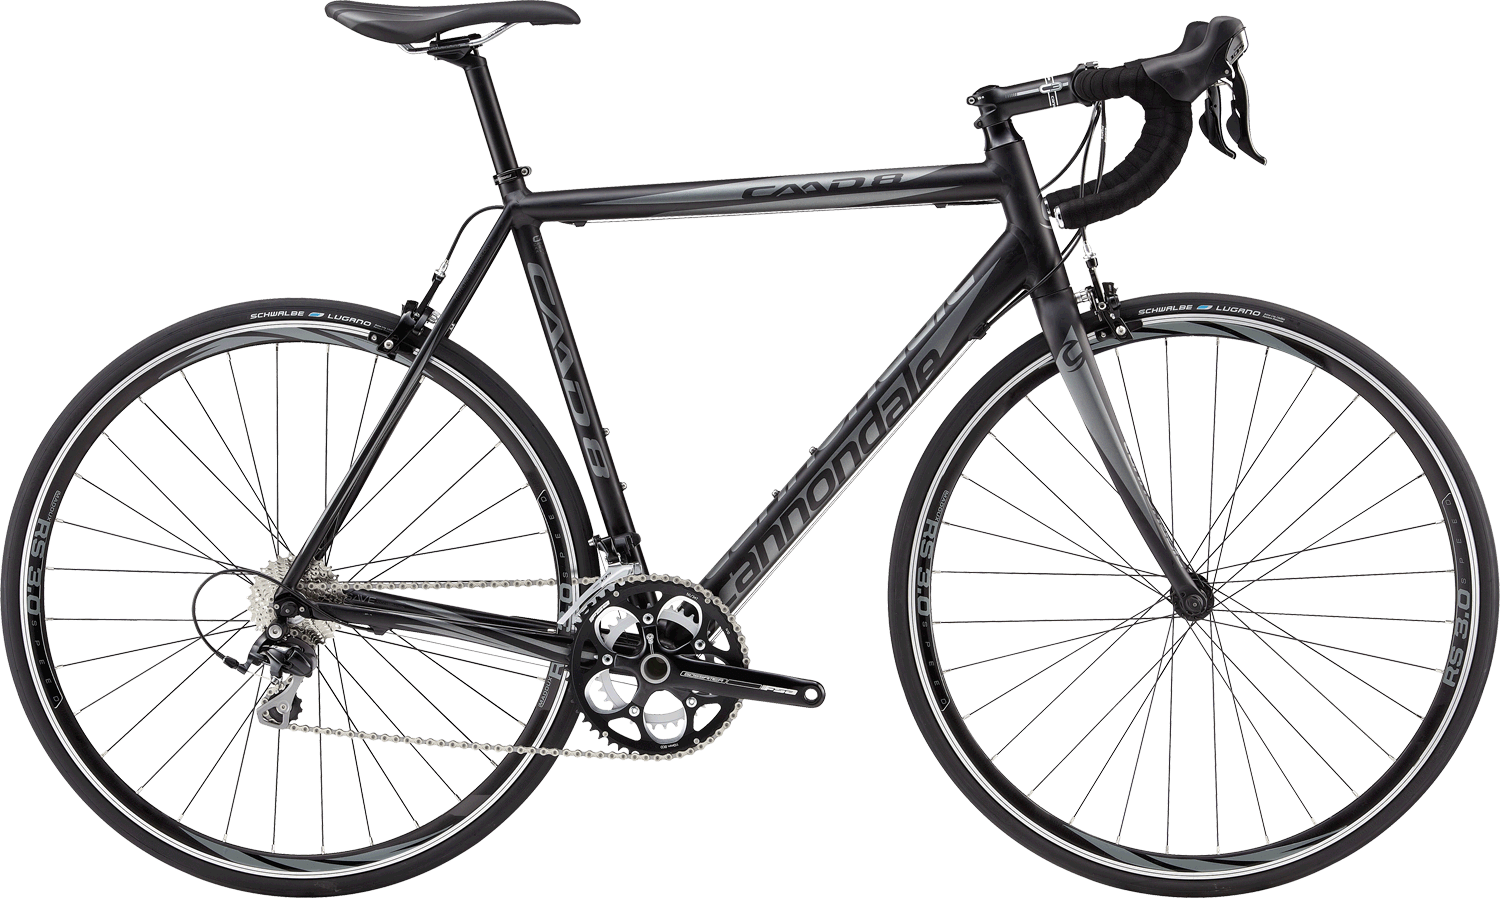 Cannondale Caad8 105 Mini Review And Ride Report